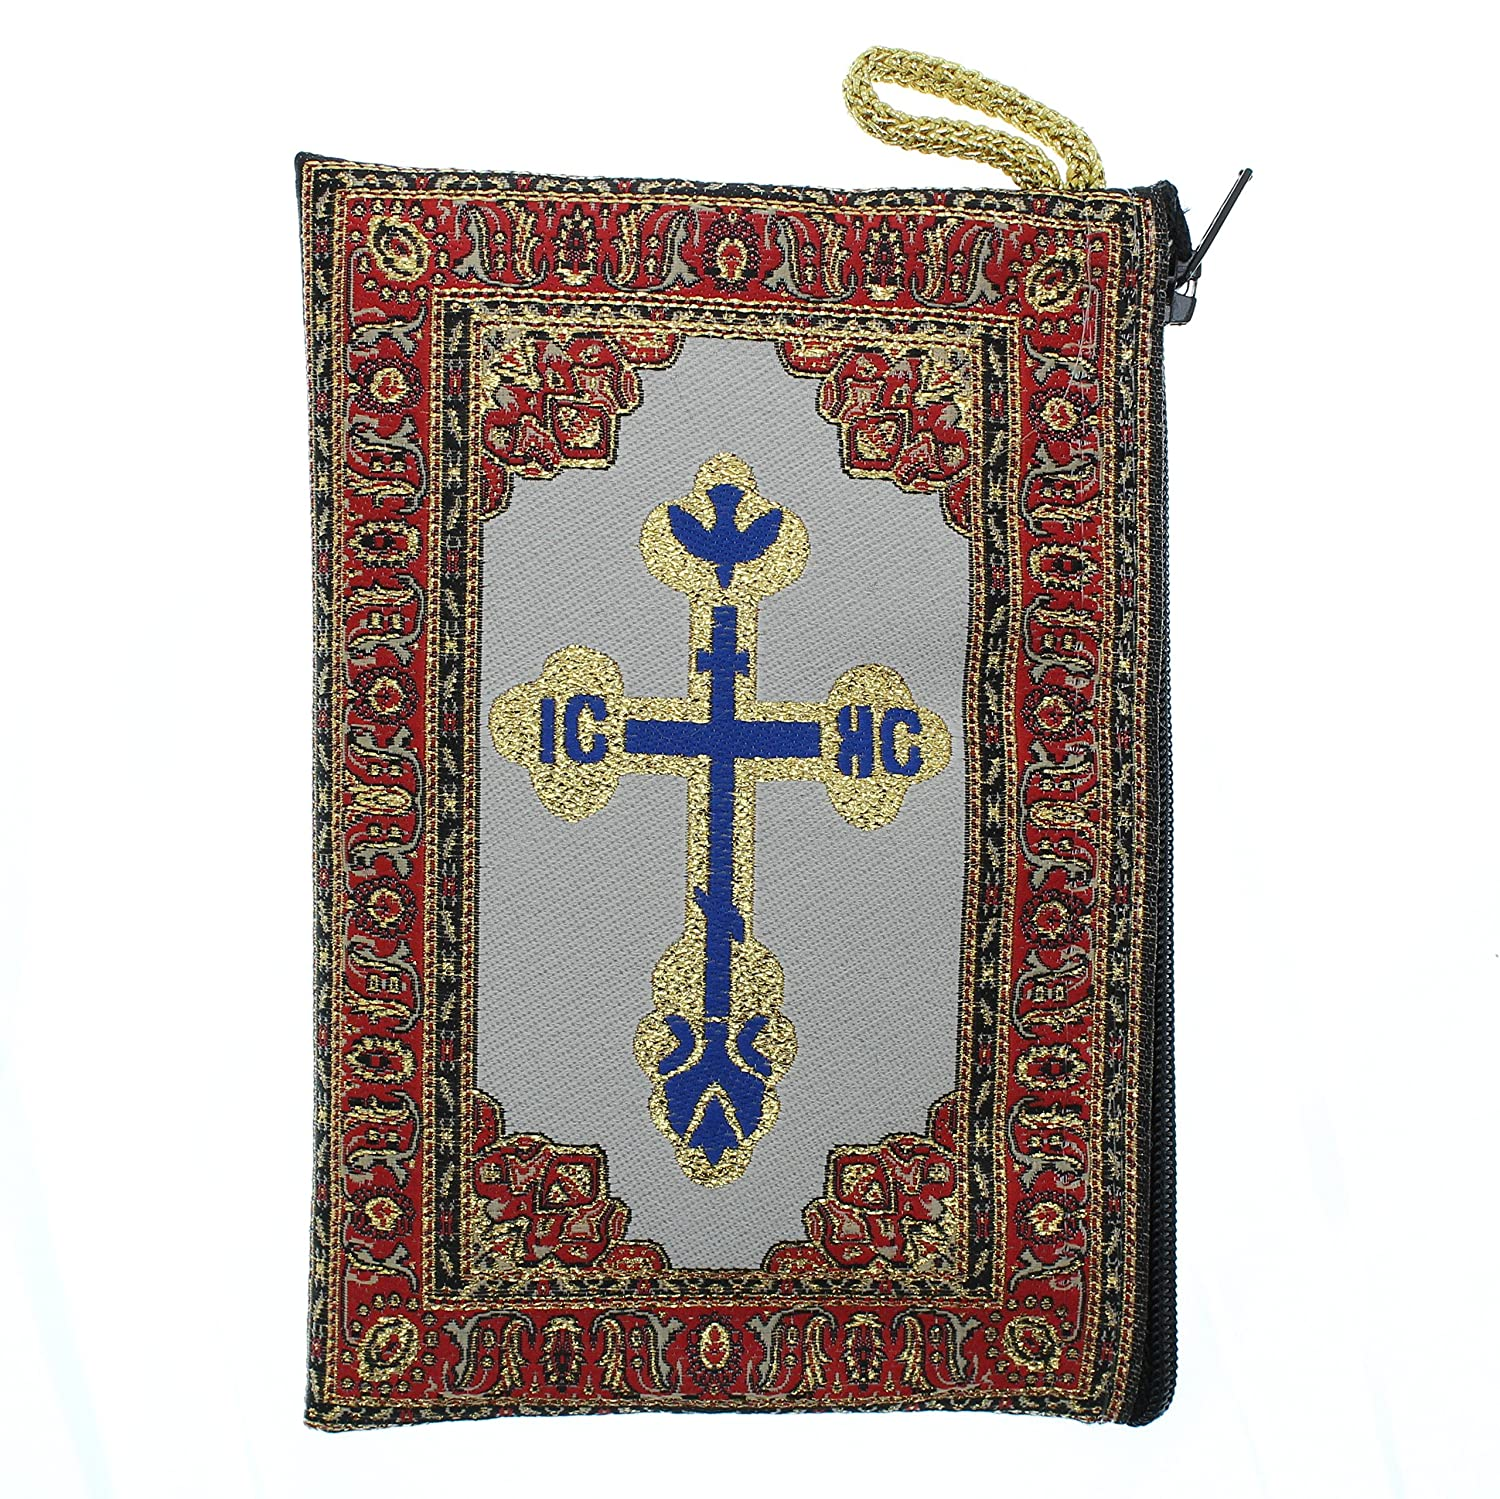 Intercession Hand-Woven Blue - Small IntercessionTM Lined Madonna and Child Rosary Pouch Made in Turkey with Premium Metallic Thread